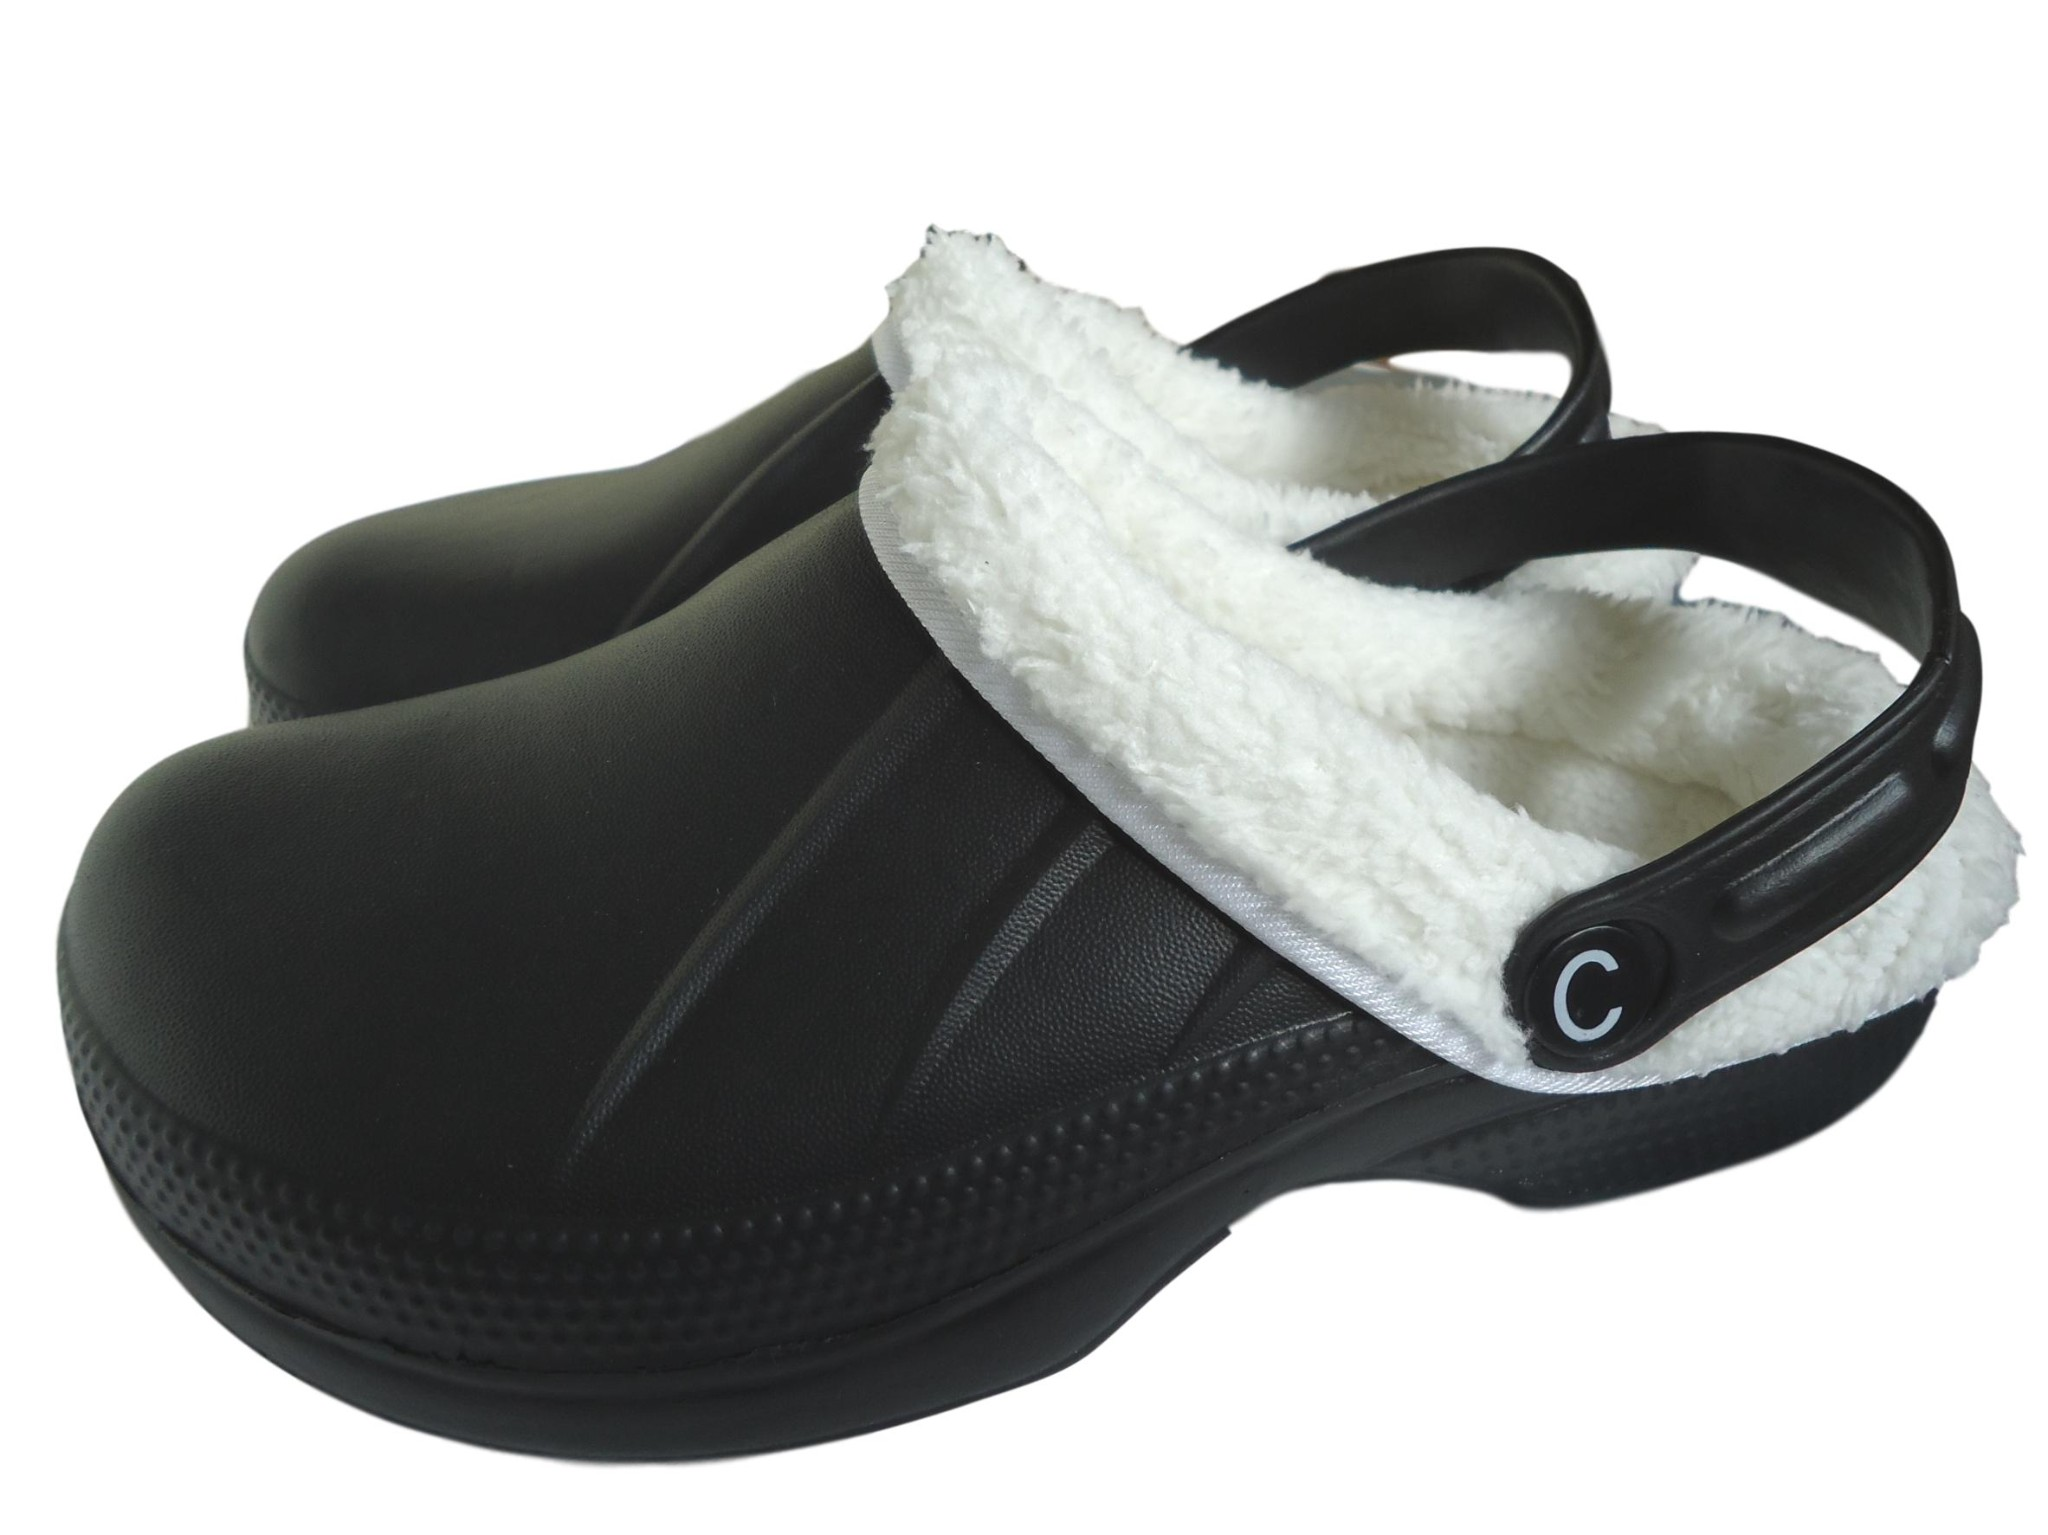 New thermal lined Garden Clogs Ladies